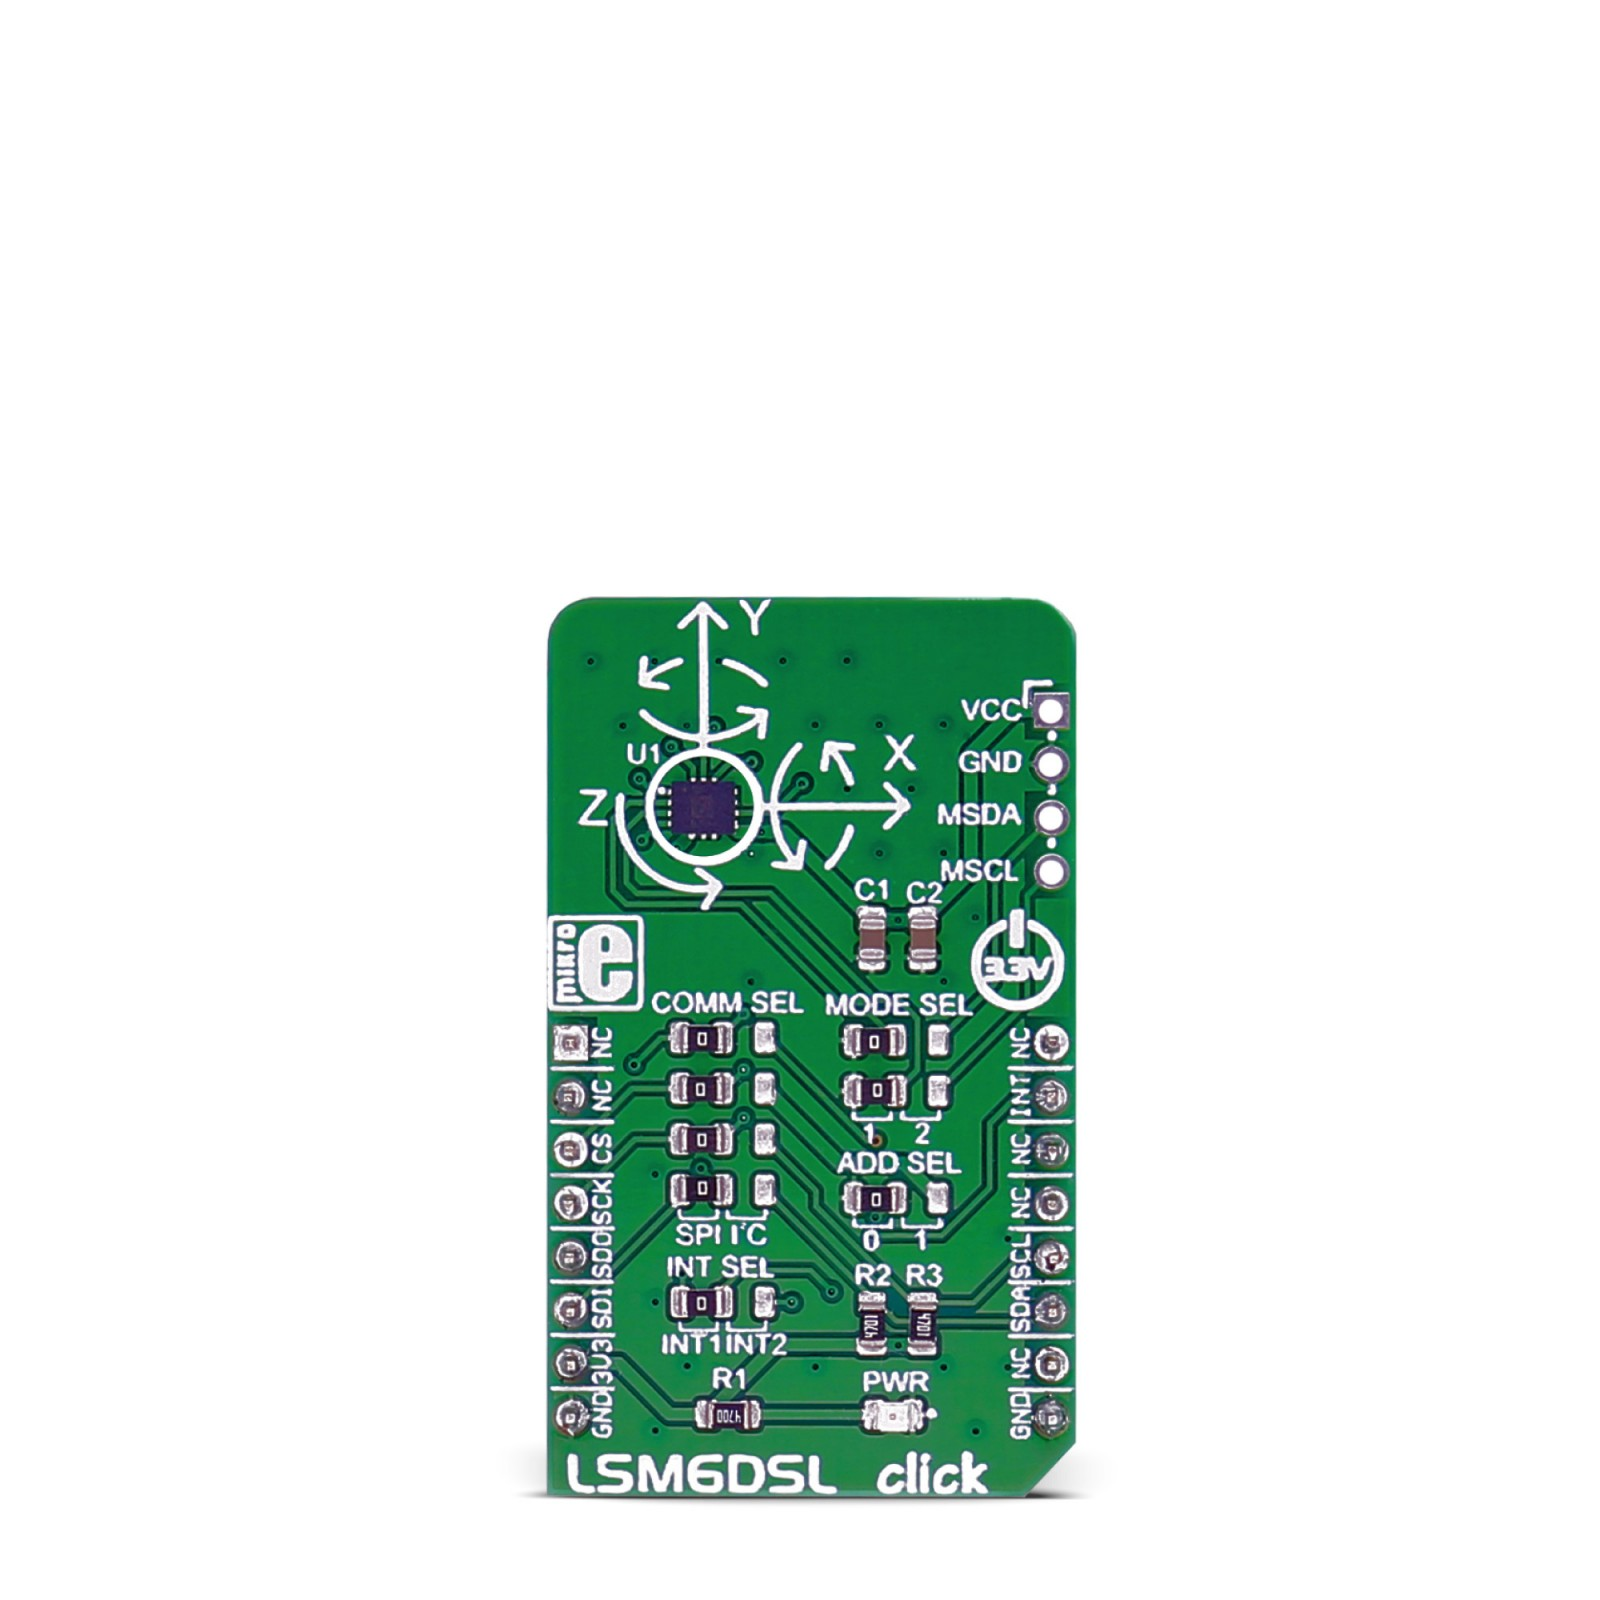 Lsm6dsl Click Board With High Performance 3 Axis Digital Lets Take A Look At The Spi Timing Diagram For Mode 1 Mgctlbxnmzp Mgctlbxv5112 Mgctlbxlc Mgctlbxpprestashop